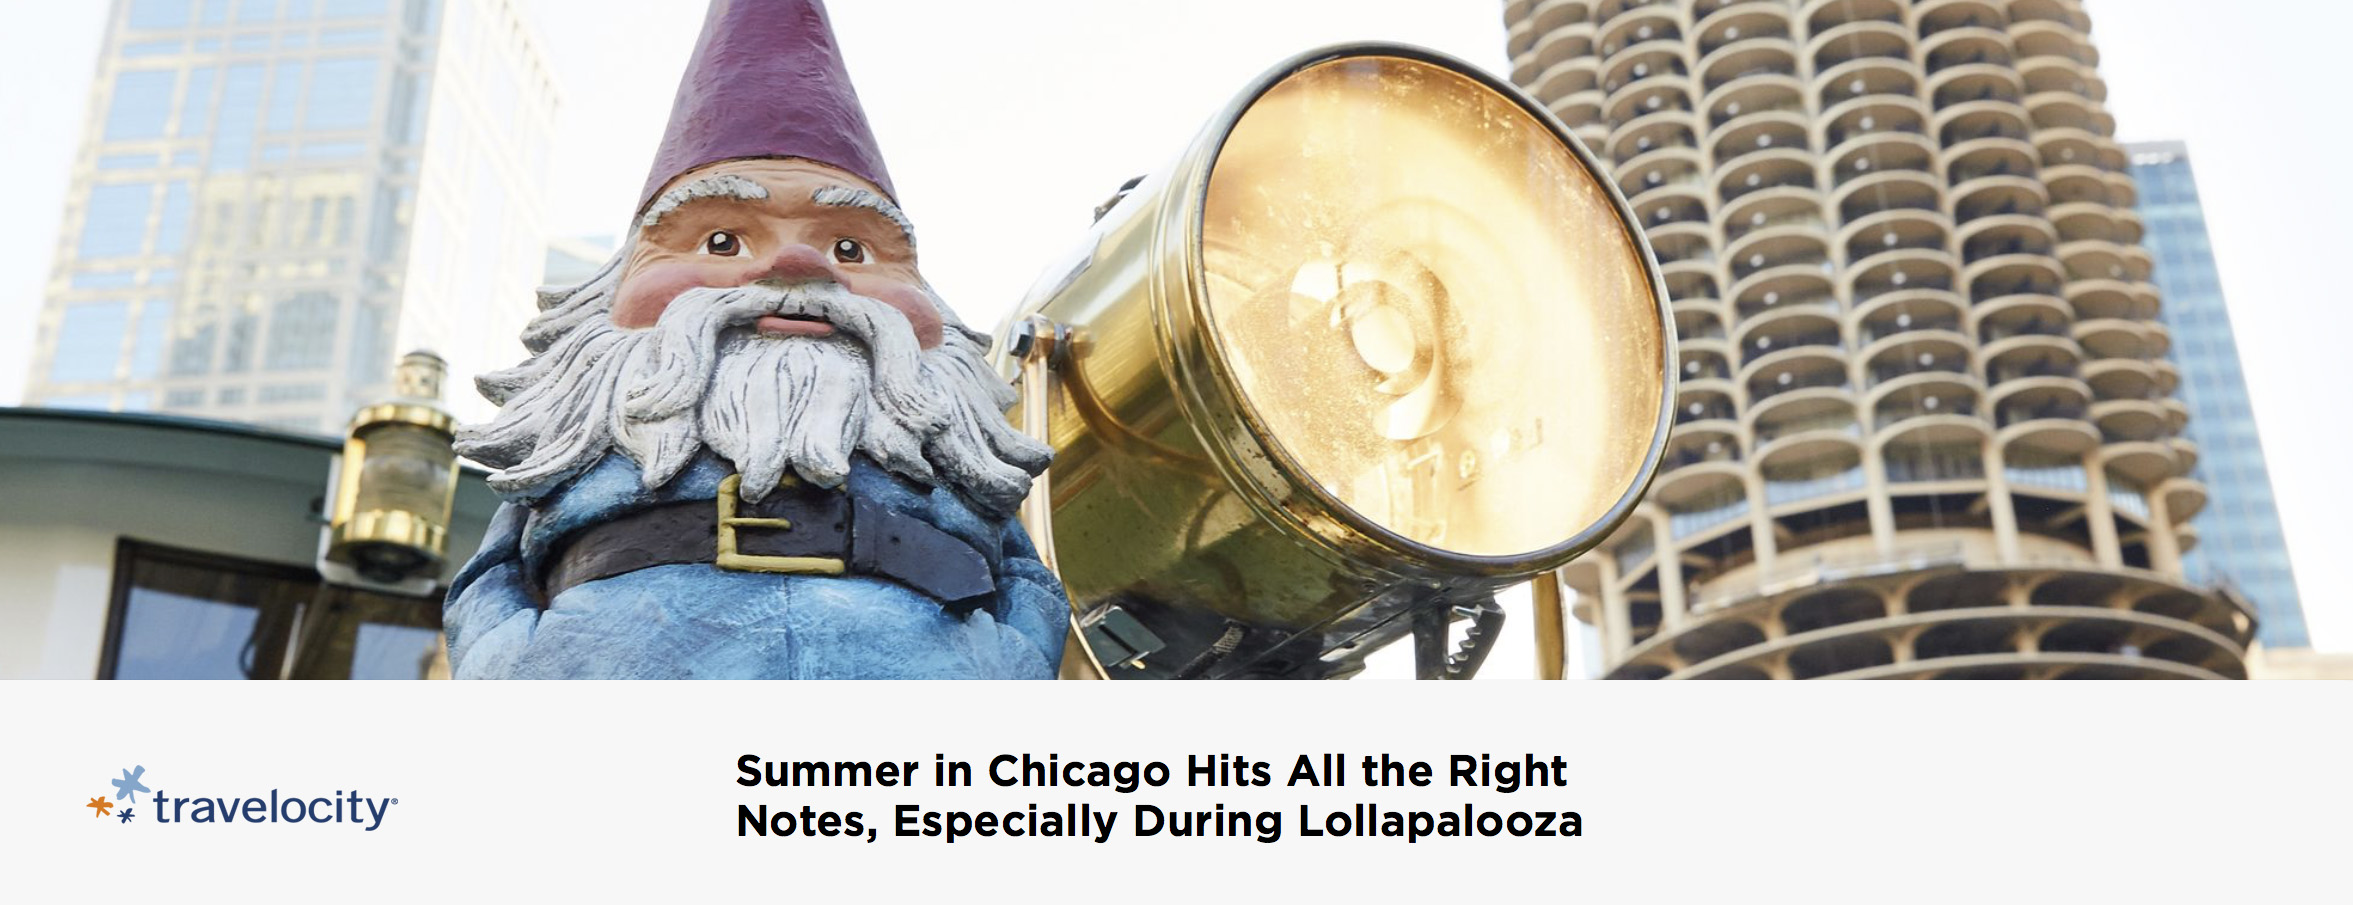 travelocity_chicago.jpg